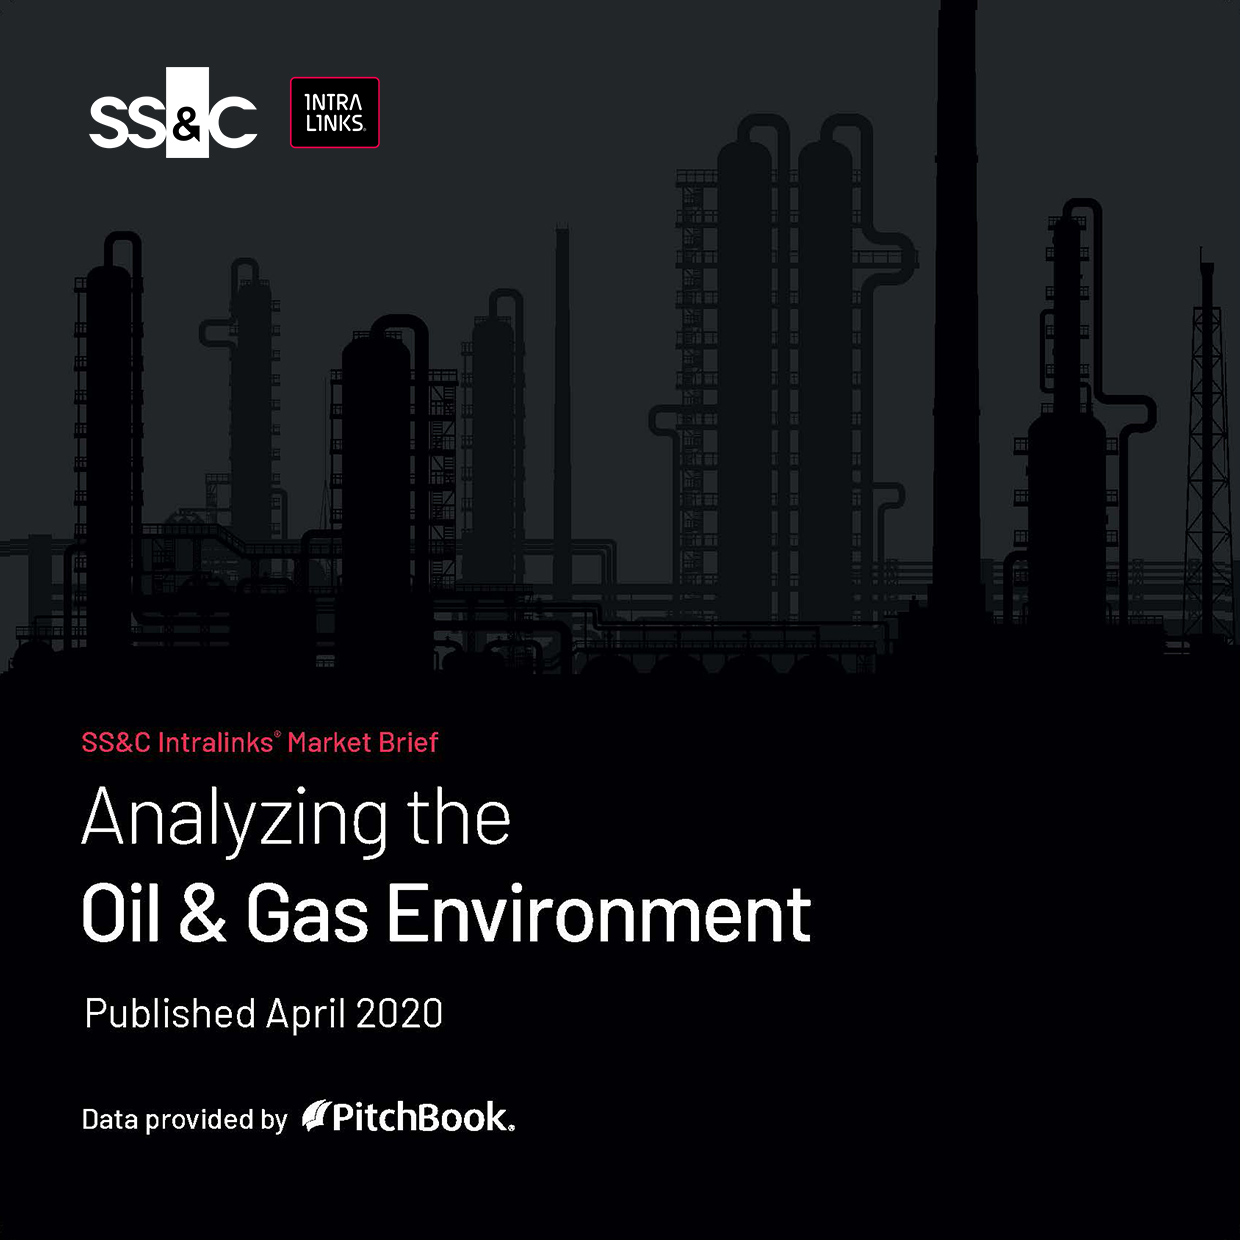 SS&C Intralinks® Market Brief: Analyzing the Oil & Gas Environment